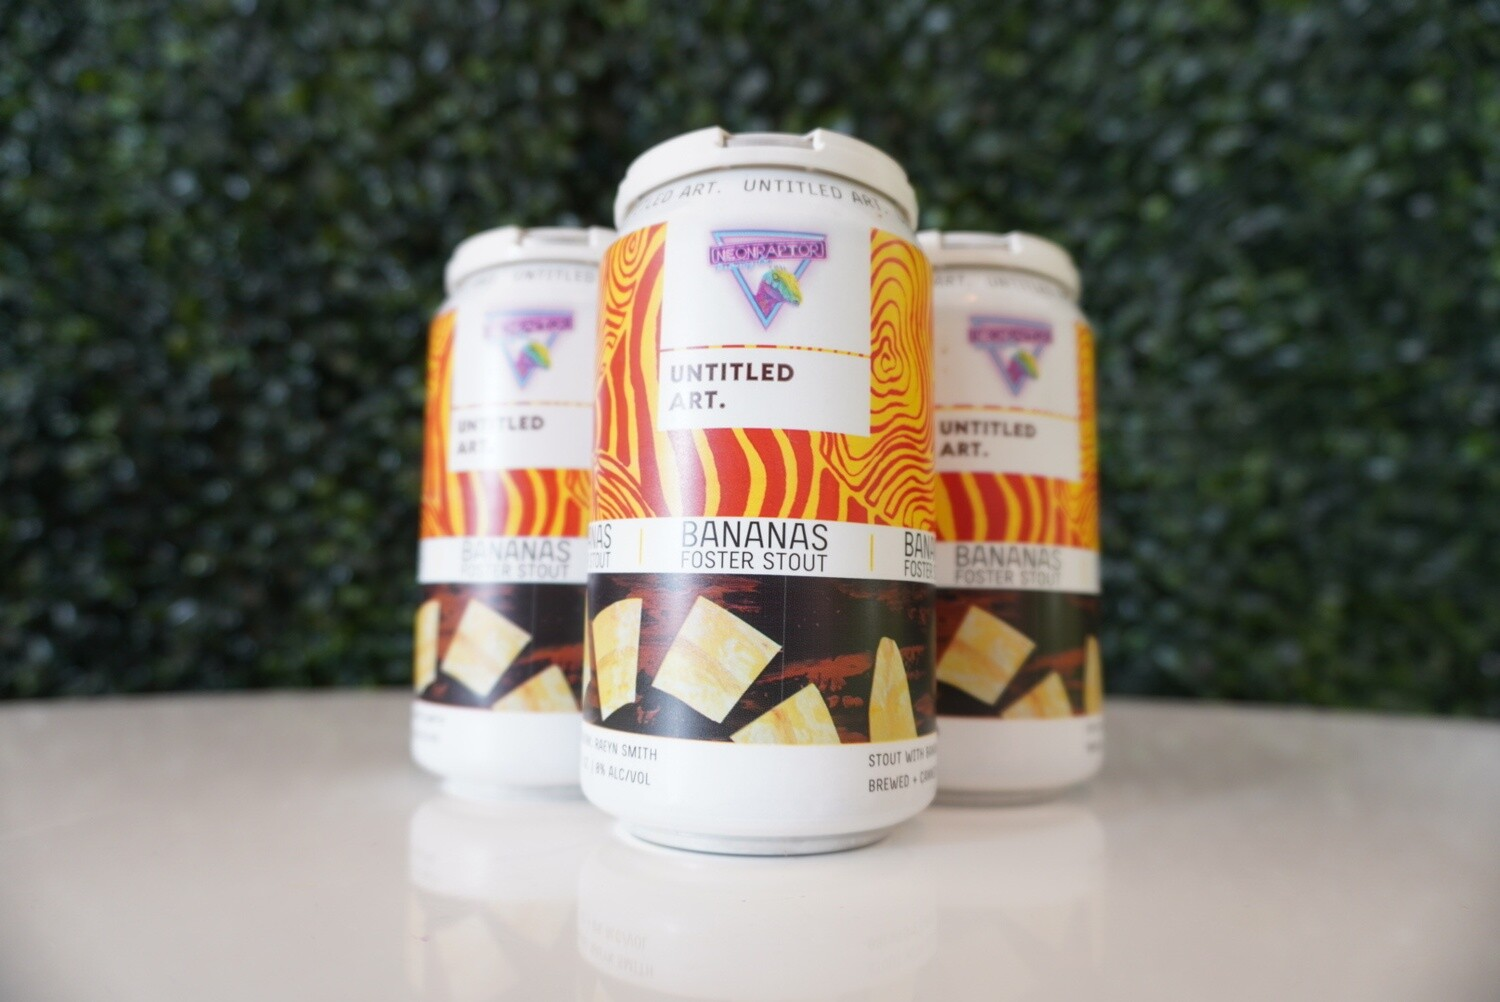 Untitled Art - Bananas Foster Stout - Pastry Stout - 8% ABV - 12oz Can